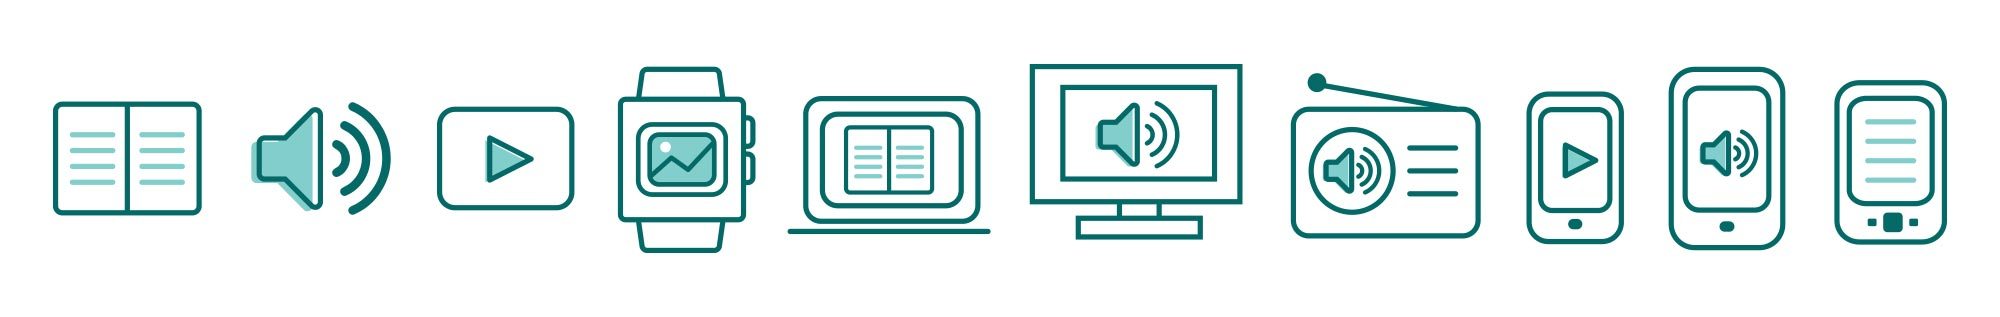 illustrated icons for the Public Media Platform